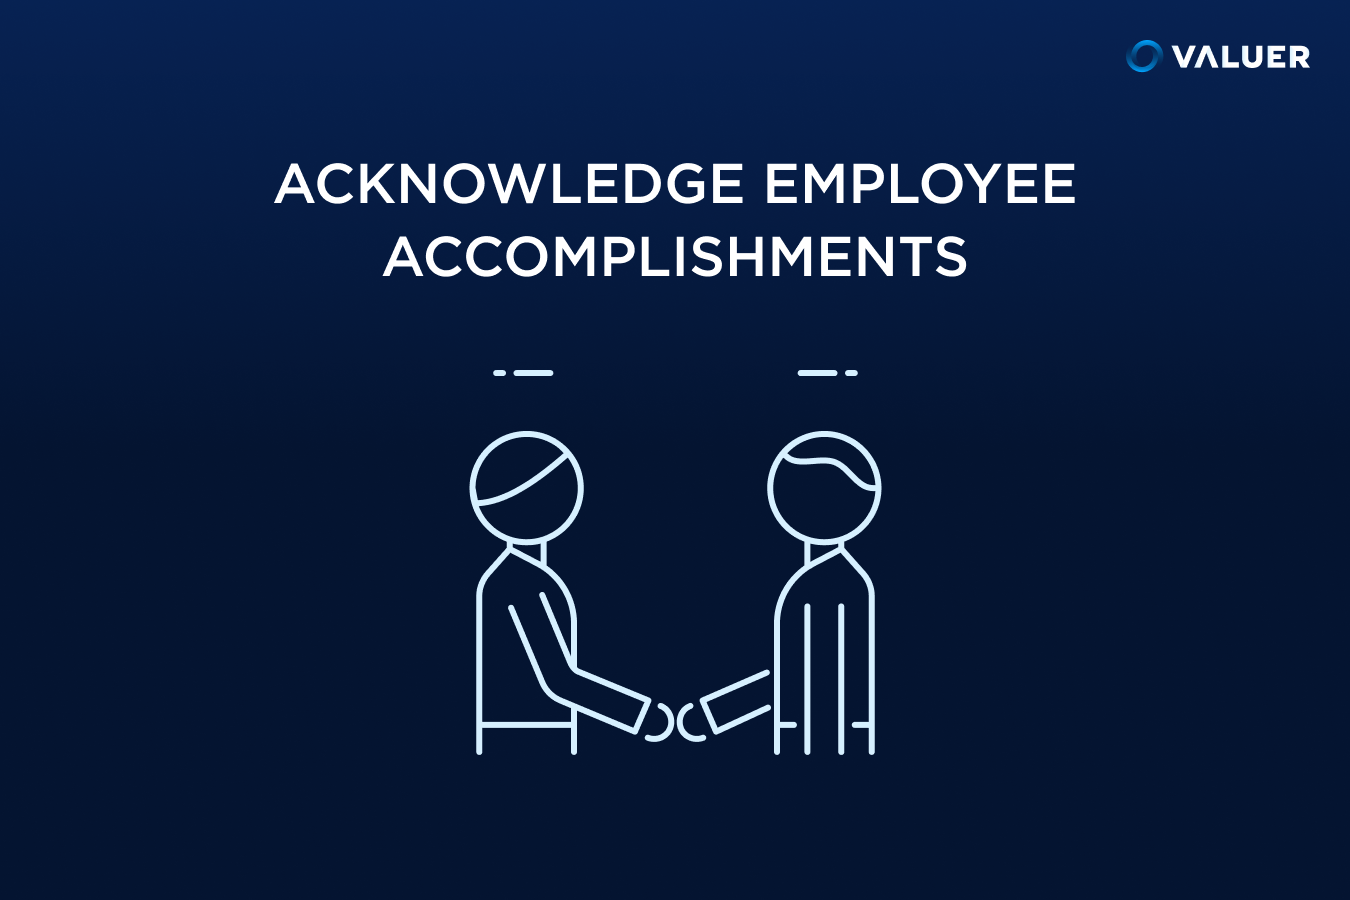 Acknowledge Employee Accomplishments Valuer image of two people shaking hands